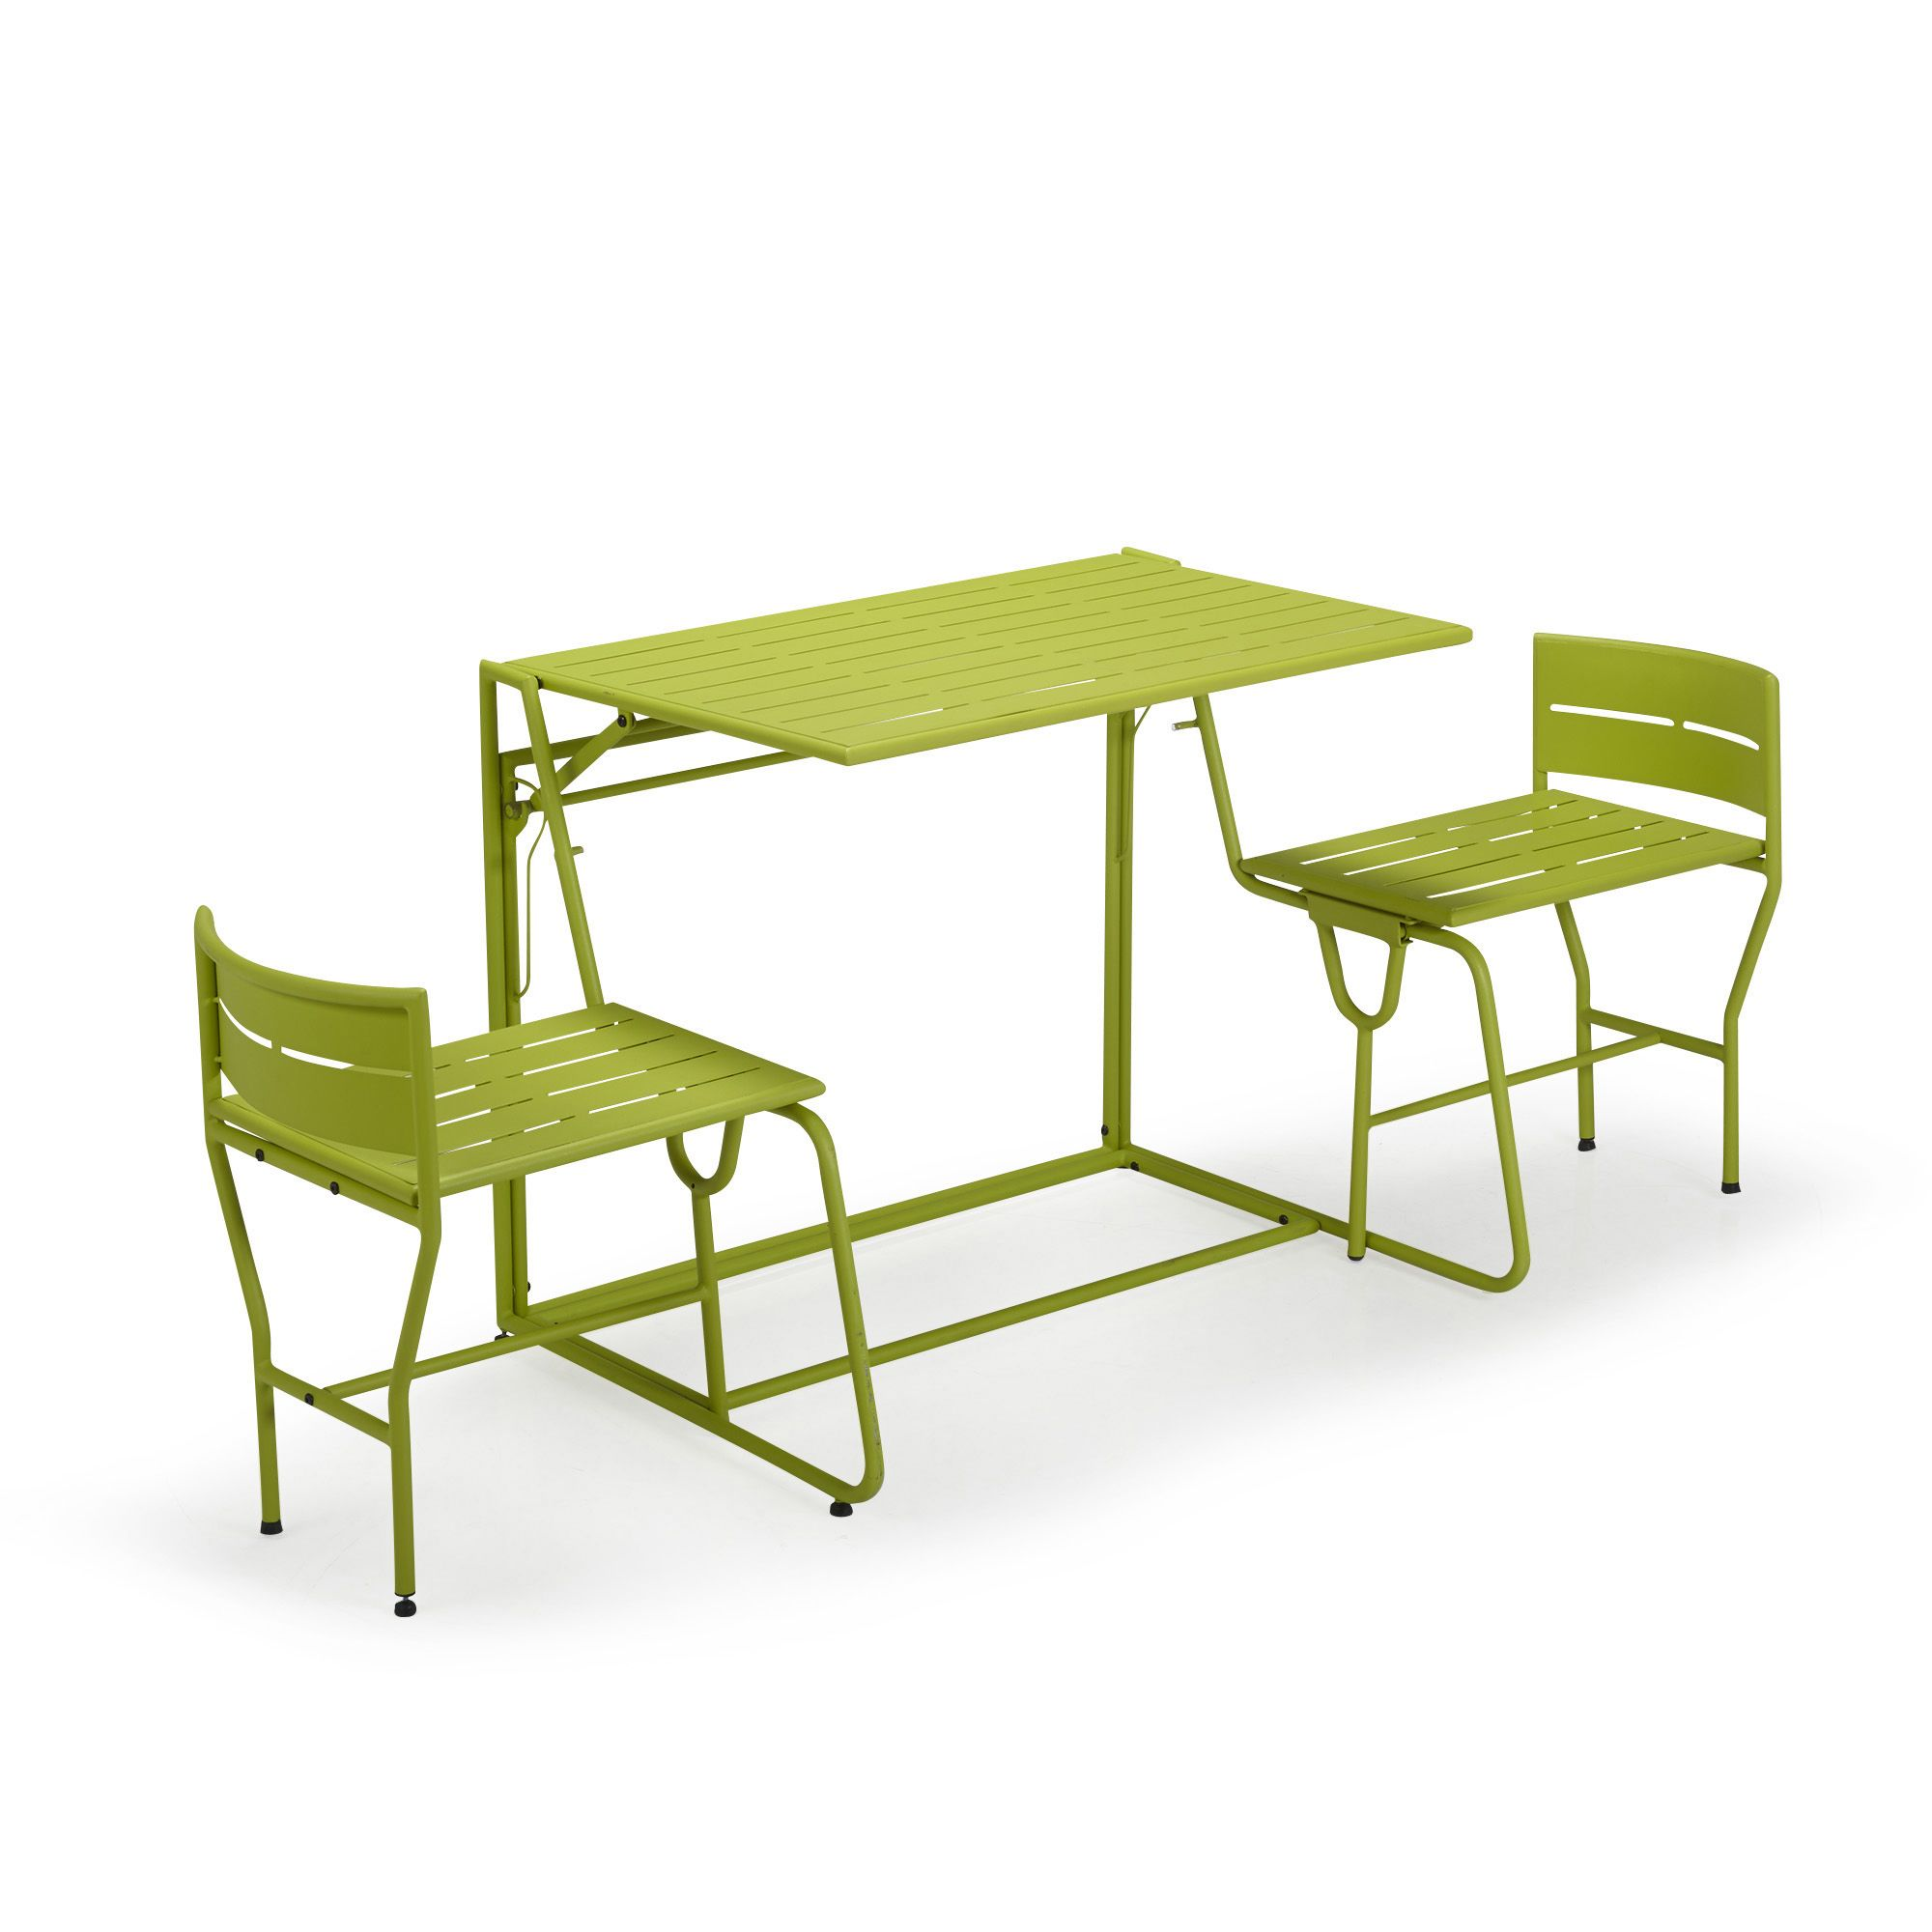 Salon-de-balcon-jardin-design-transformable-2-en-1-picnic-alinea-07